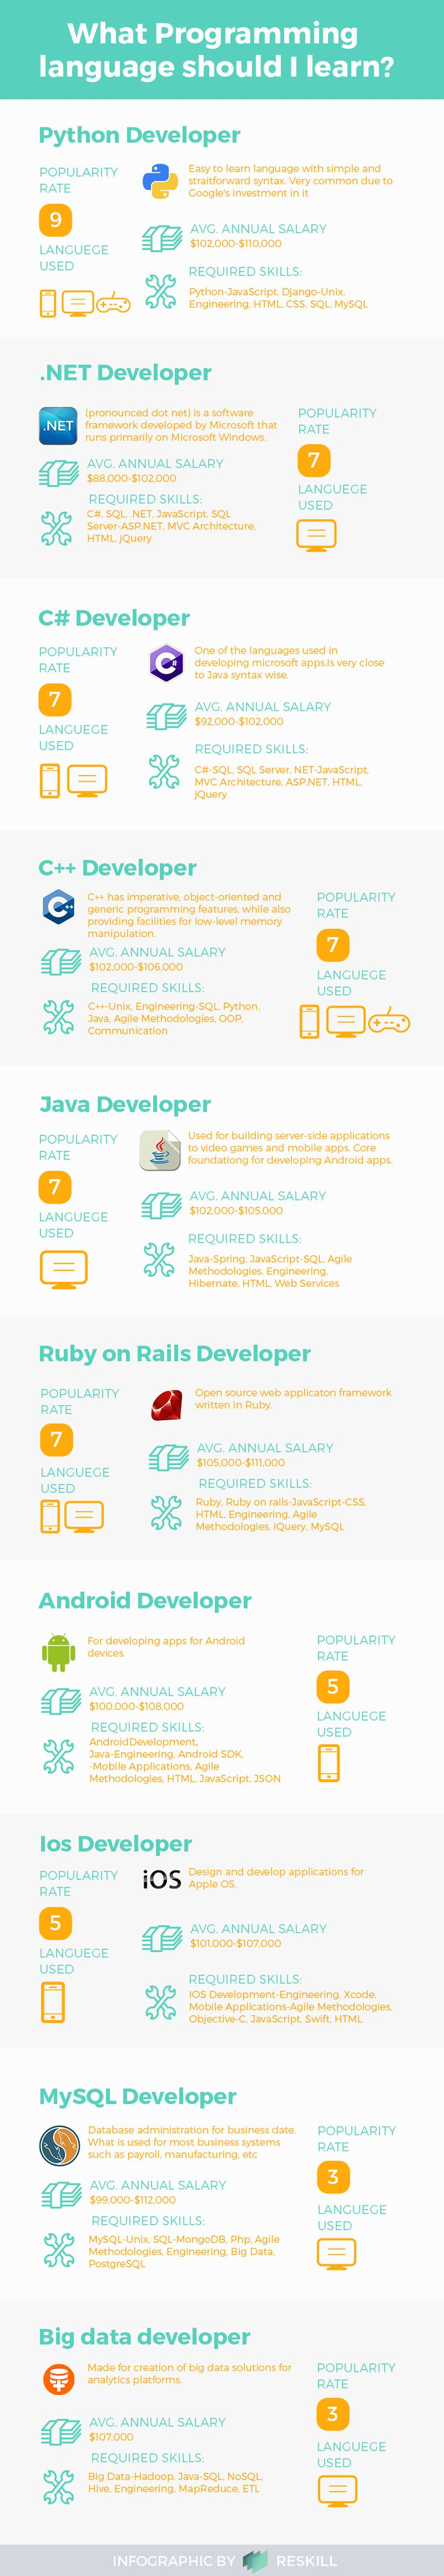 71 best computer programming images on pinterest computer what programming language should i learn infographic computer baditri Gallery